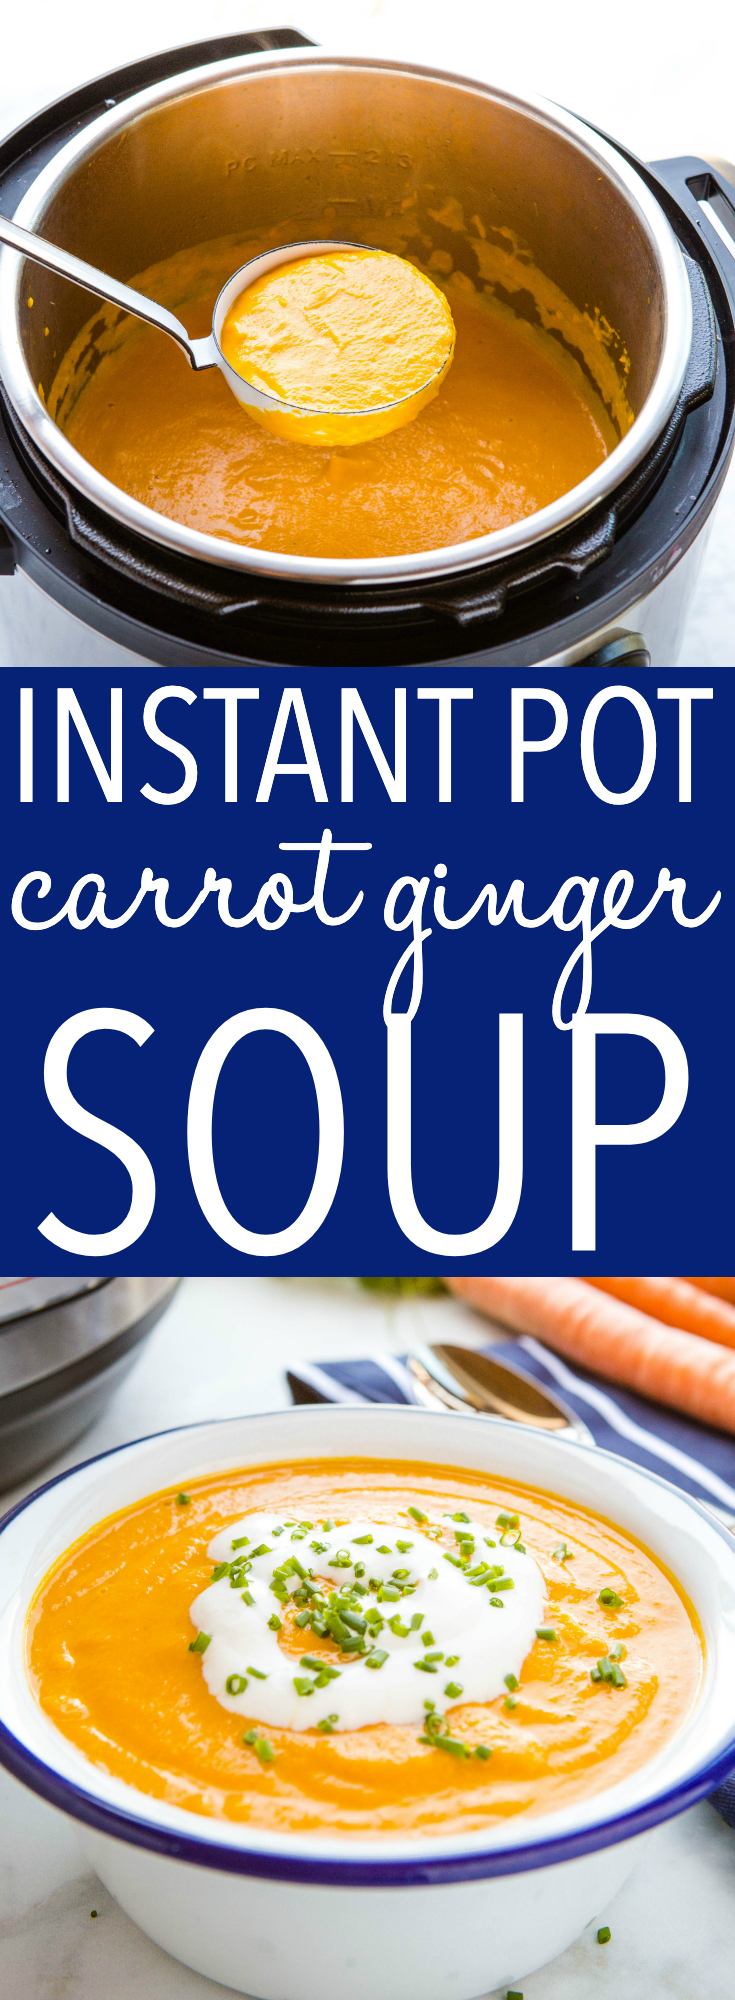 This Instant Pot Creamy Carrot Ginger Soup is warm, hearty, and flavoured with spicy ginger and creamy coconut. It's healthy, made with only a few ingredients, and it's so easy to make! Recipe from thebusybaker.ca! #carrotsoup #homemadesoup #instantpot #pressurecooker #easymeal #mealidea #mealprep #healthy #vegan #vegetarian via @busybakerblog